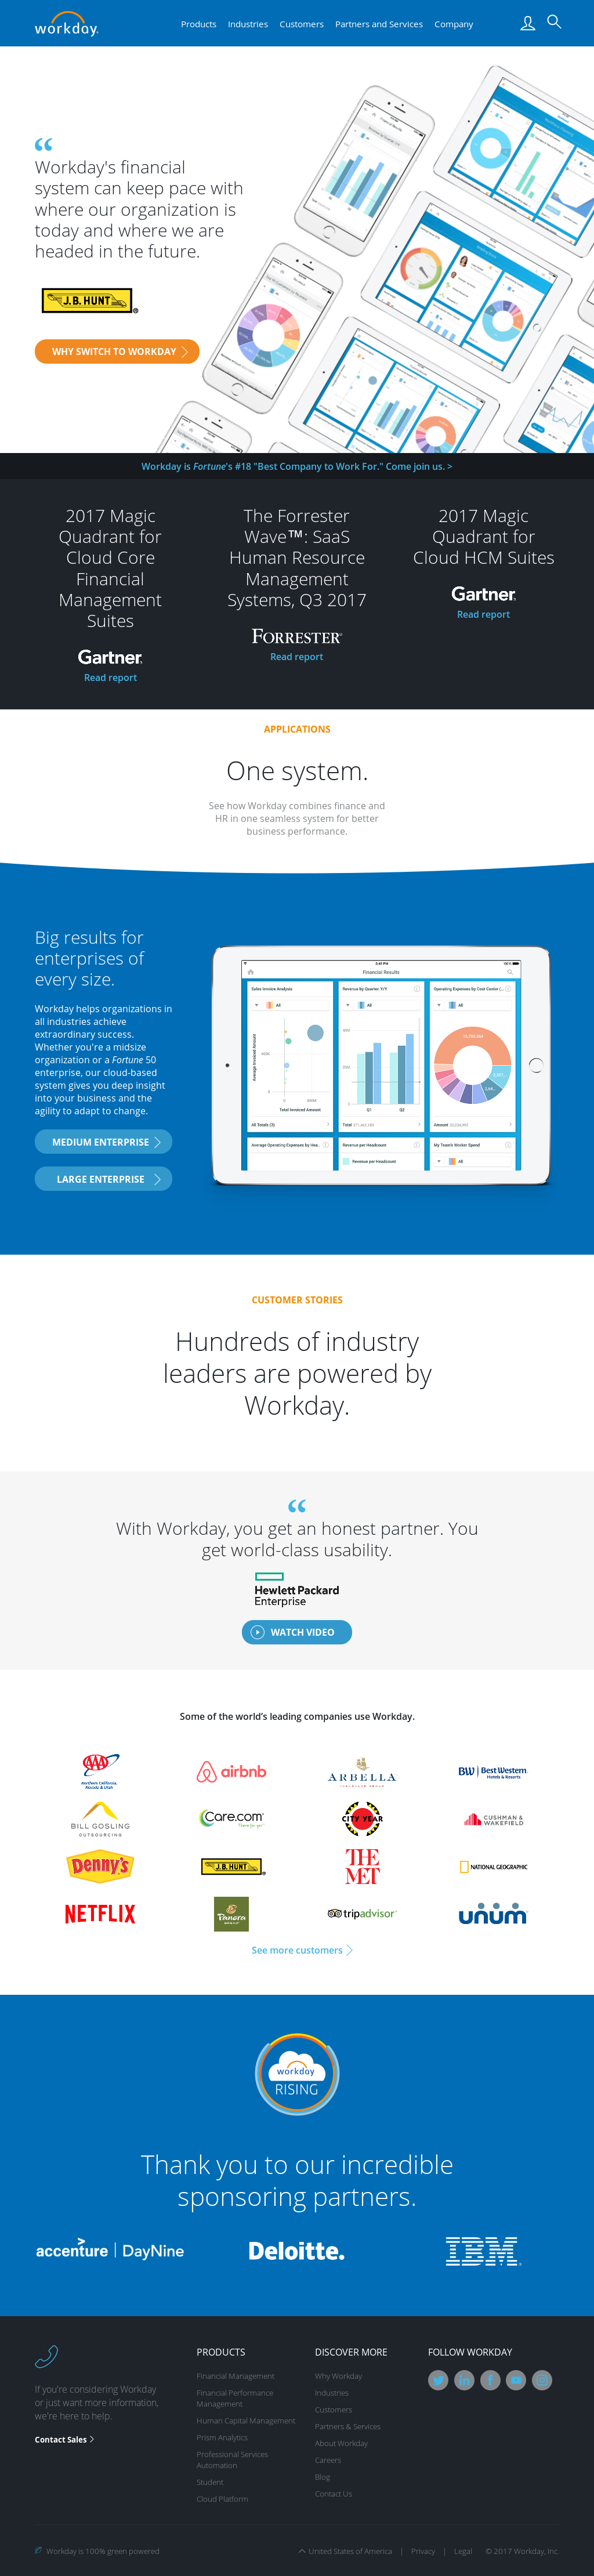 Workday Medtronic